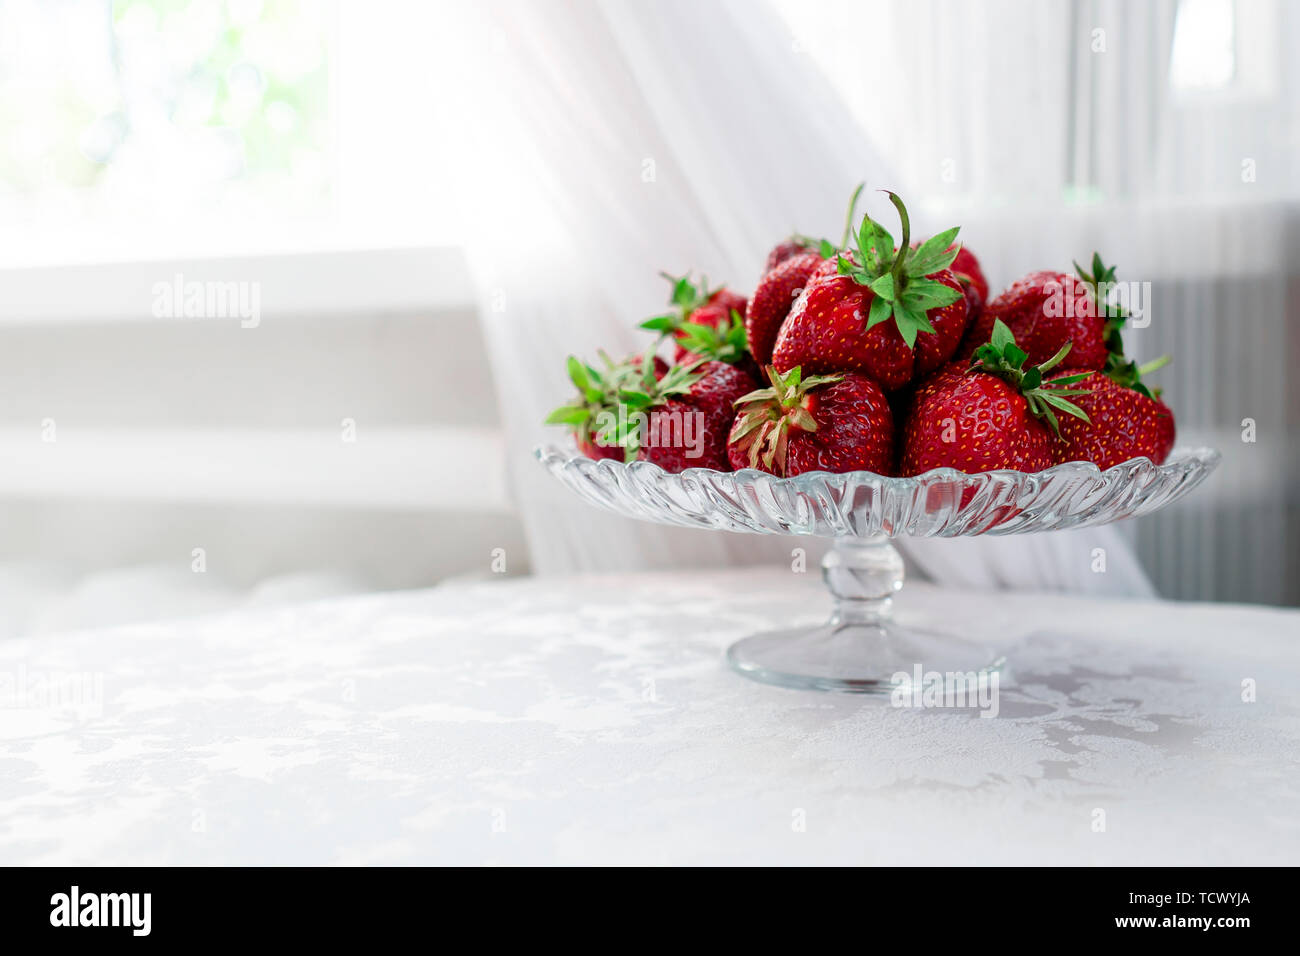 still life of fresh strawberries on the table - Stock Image